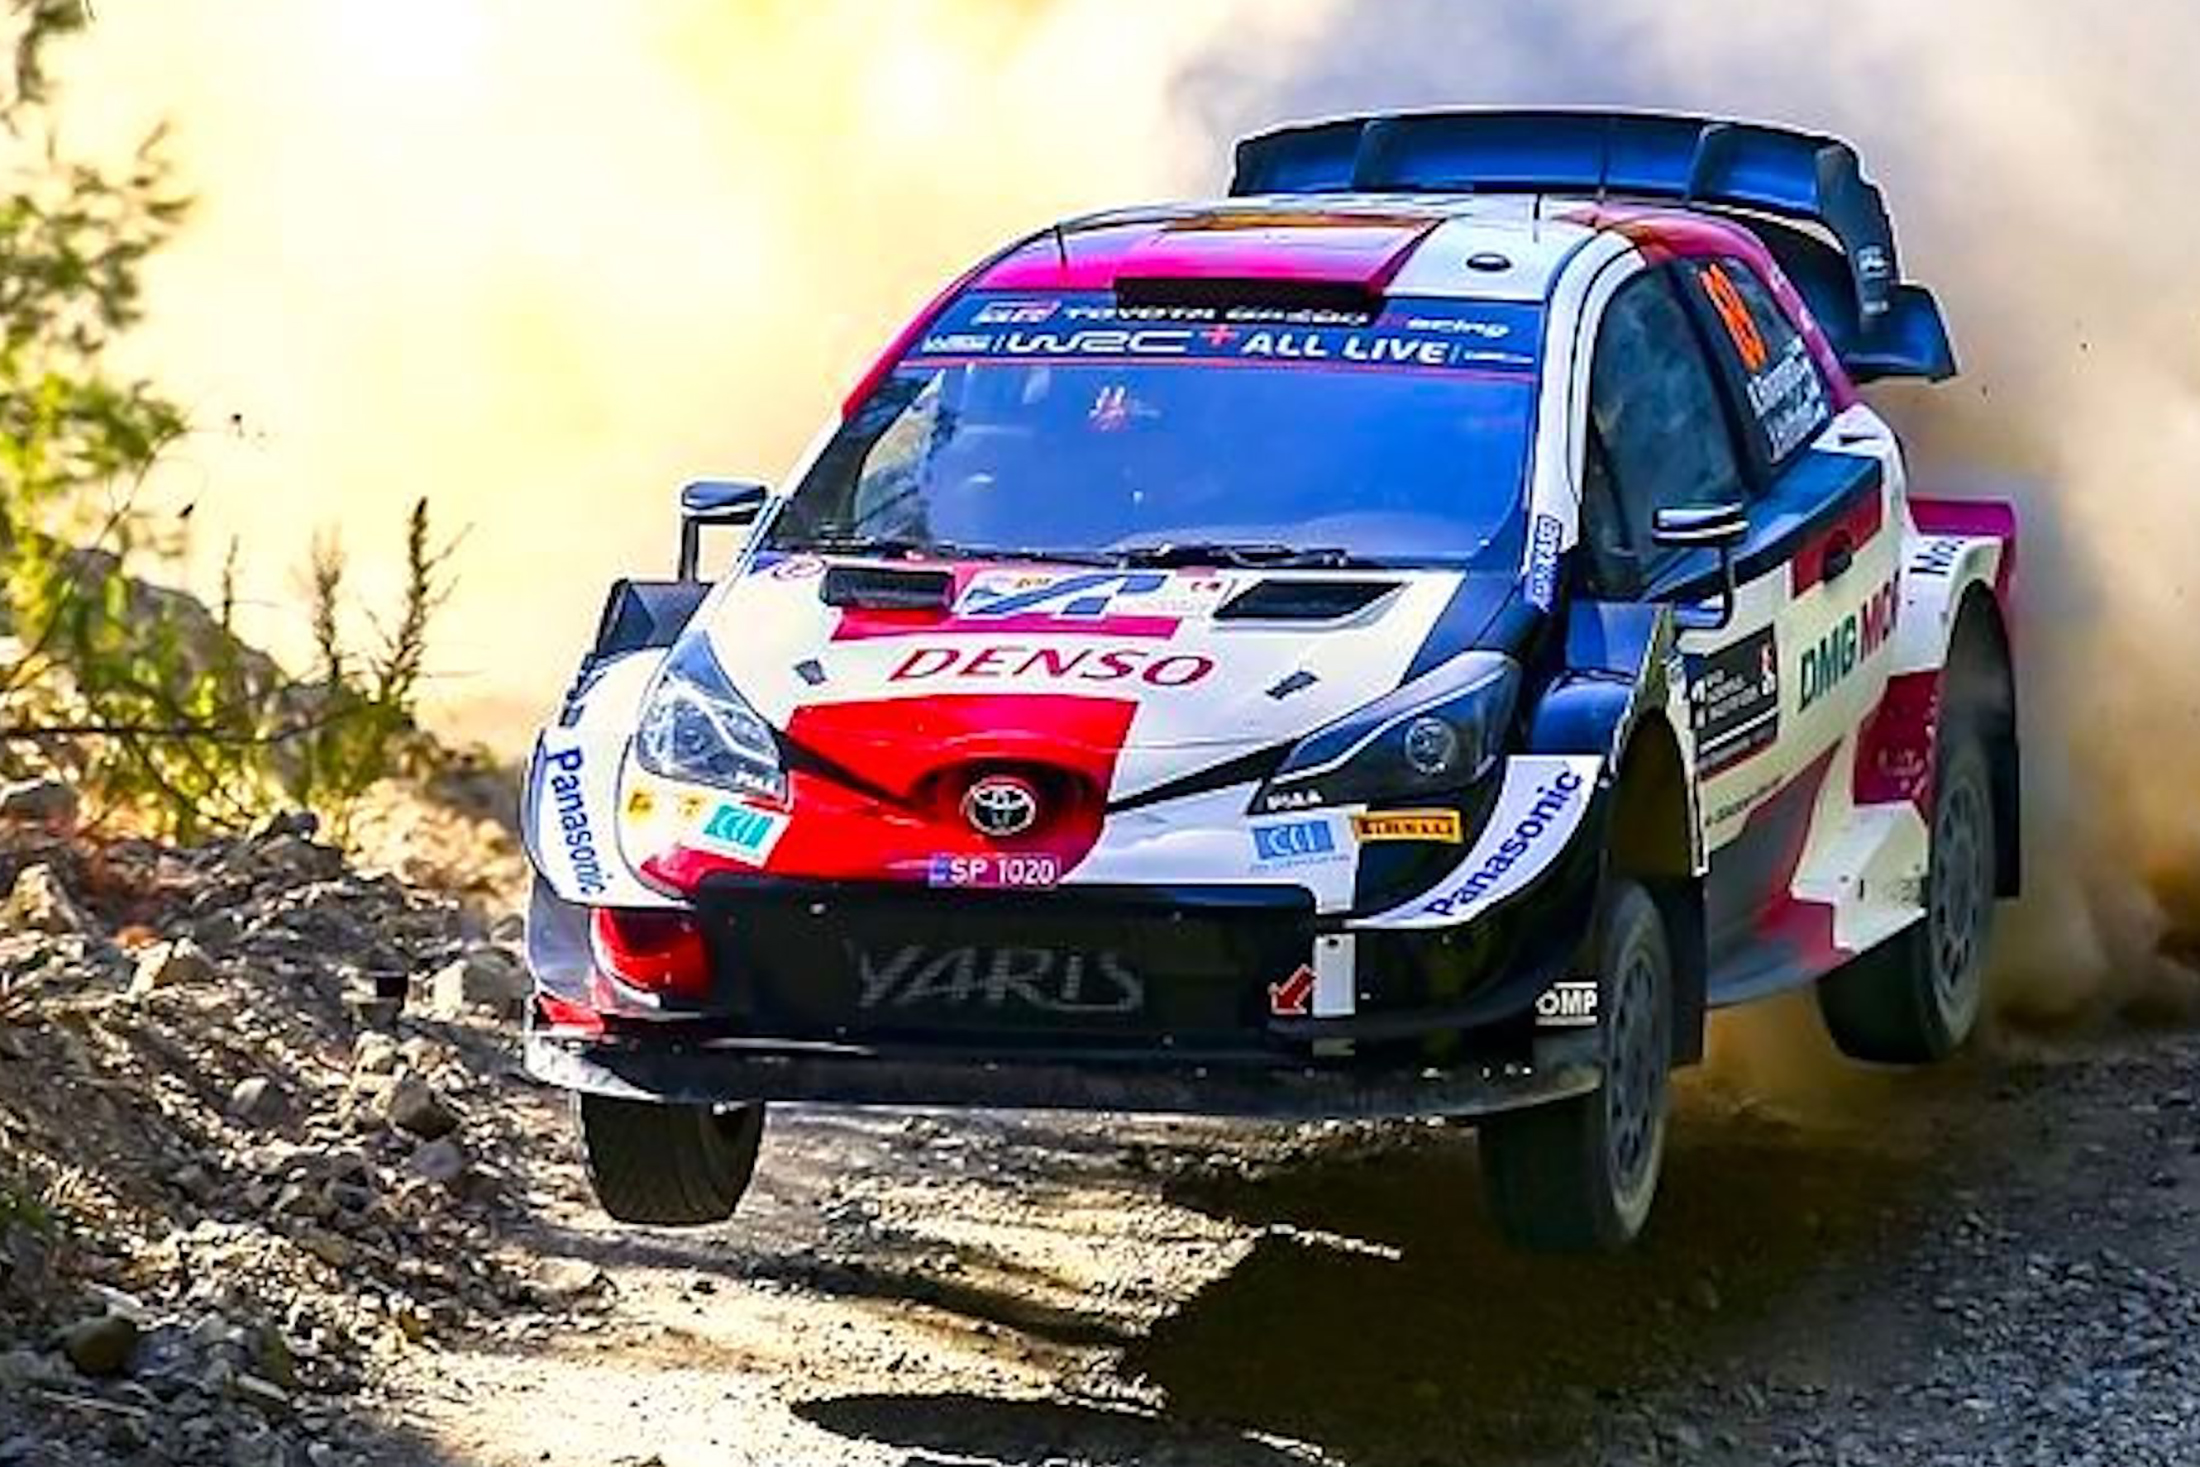 TOYOTA TAKES ACROPOLIS ON A DRAMATIC RACE WEEKEND